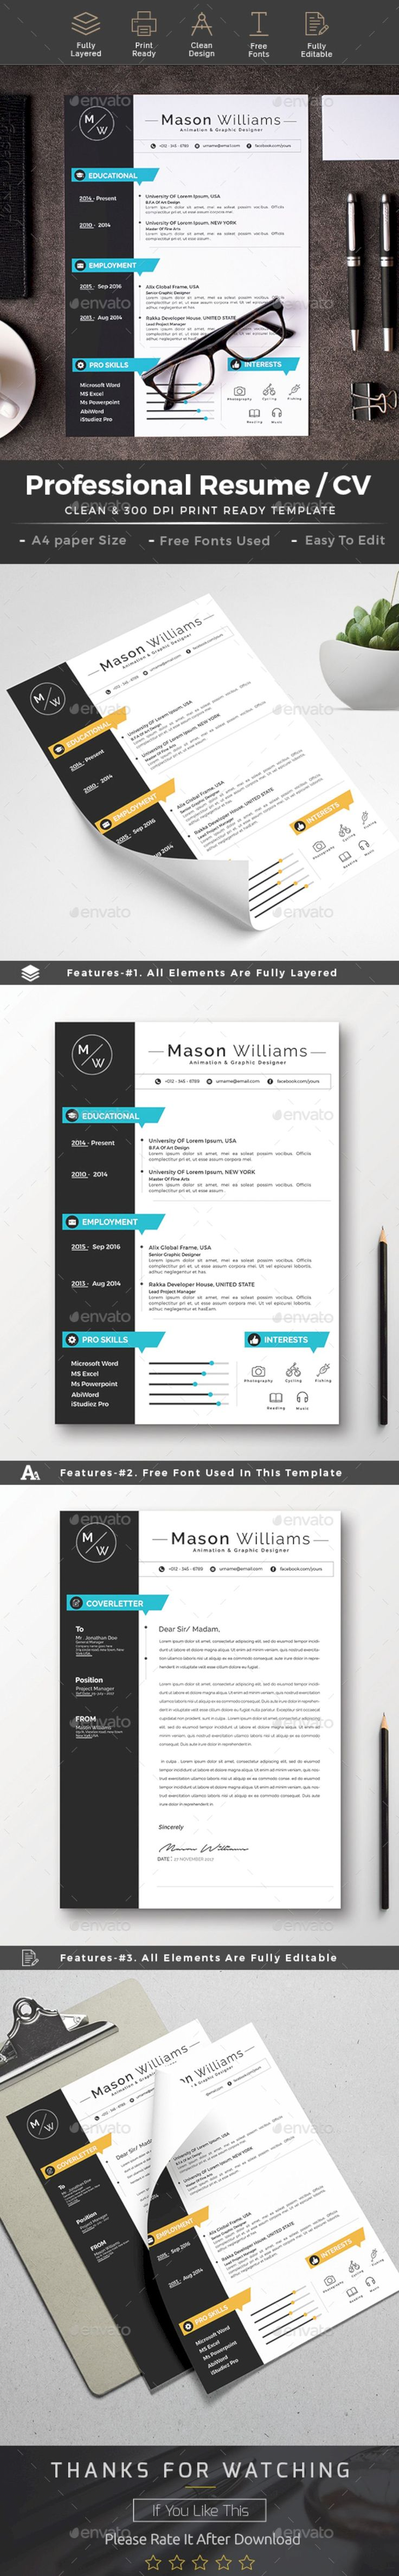 61 Cool Resume Design Ideas https://www.designlisticle.com/resume-ideas/